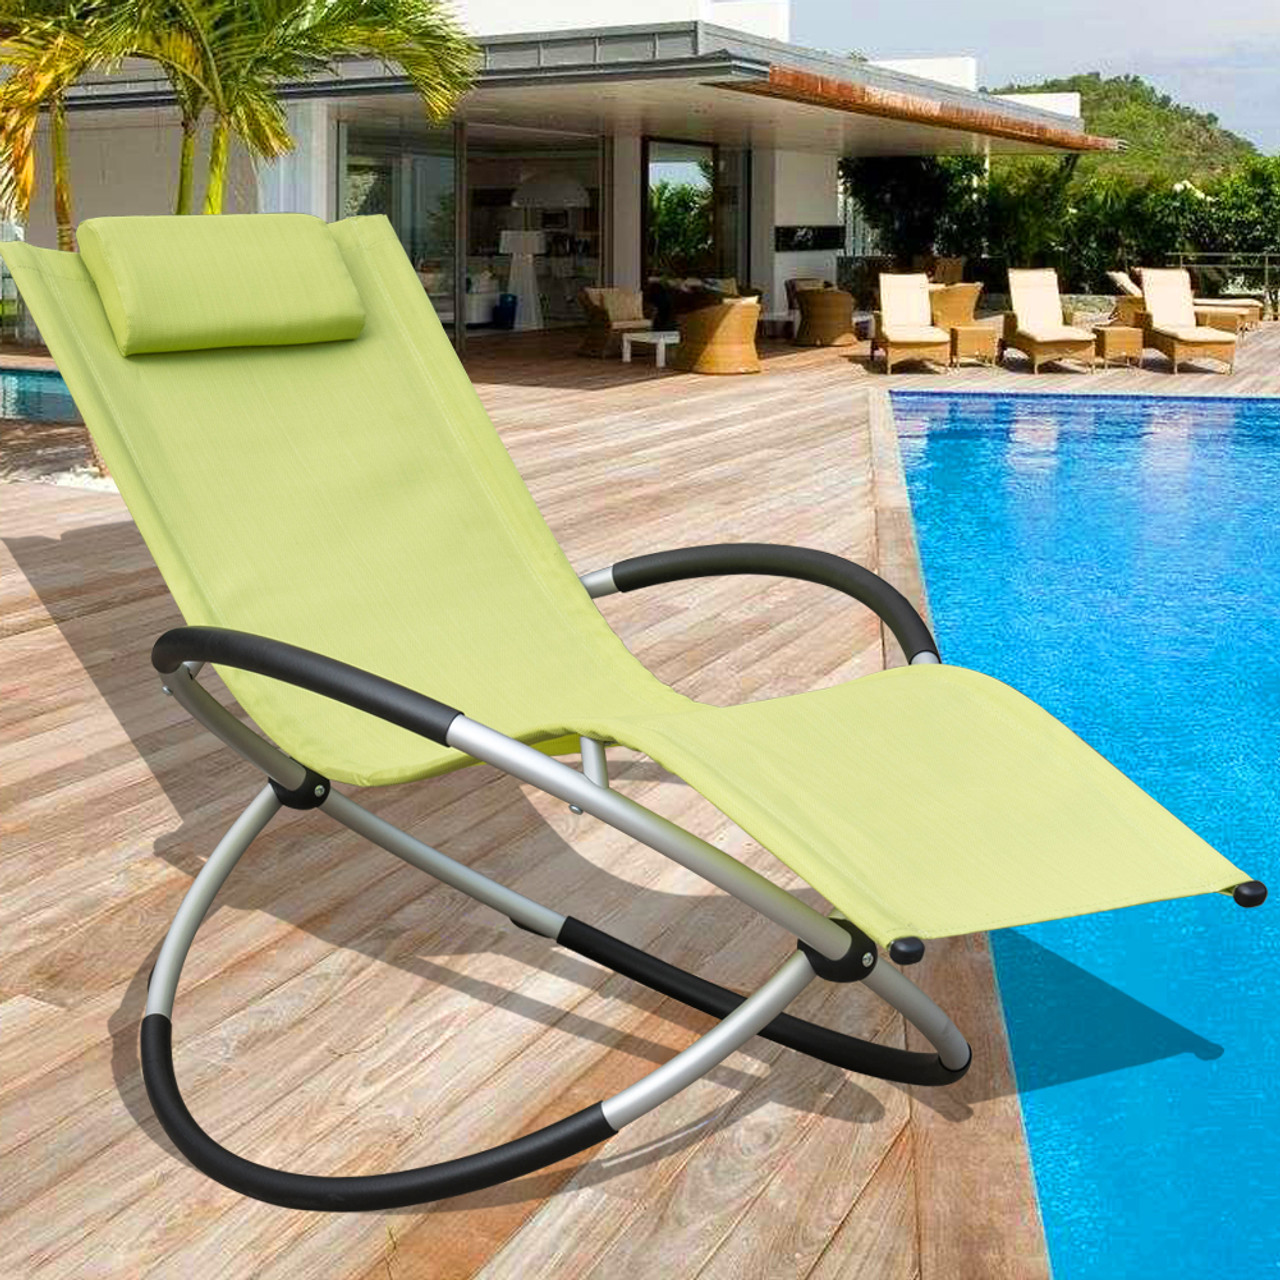 Folding outdoor lounge chair - Orbital Zero Gravity Folding Rocking Patio Lounge Chair With Pillow